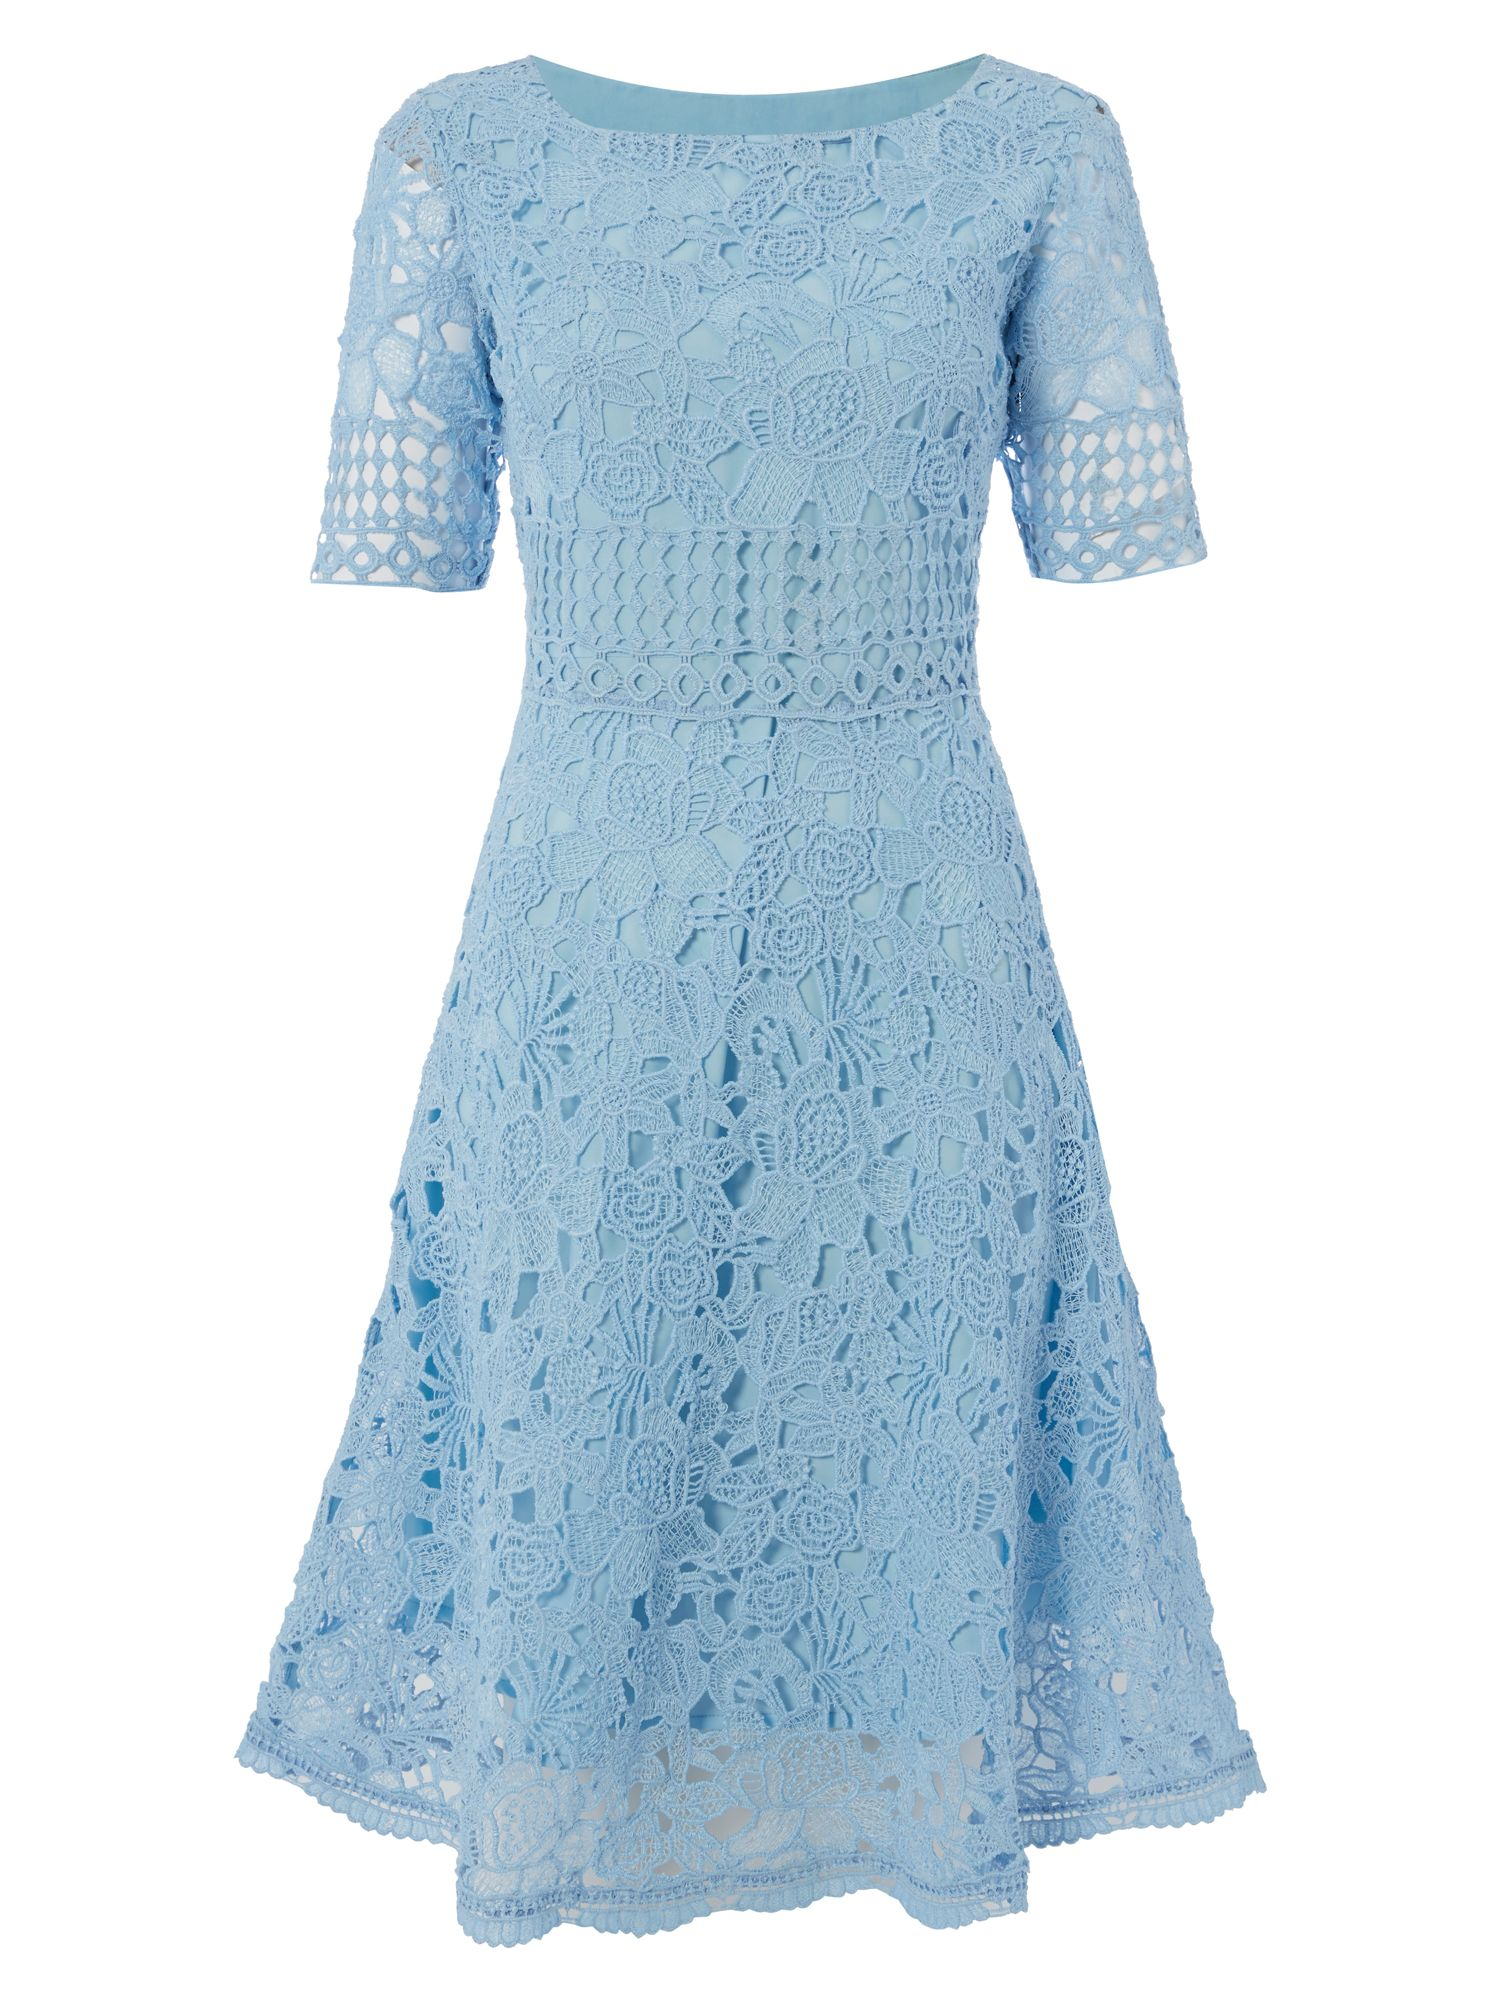 RAISHMA Lace Dress, Blue